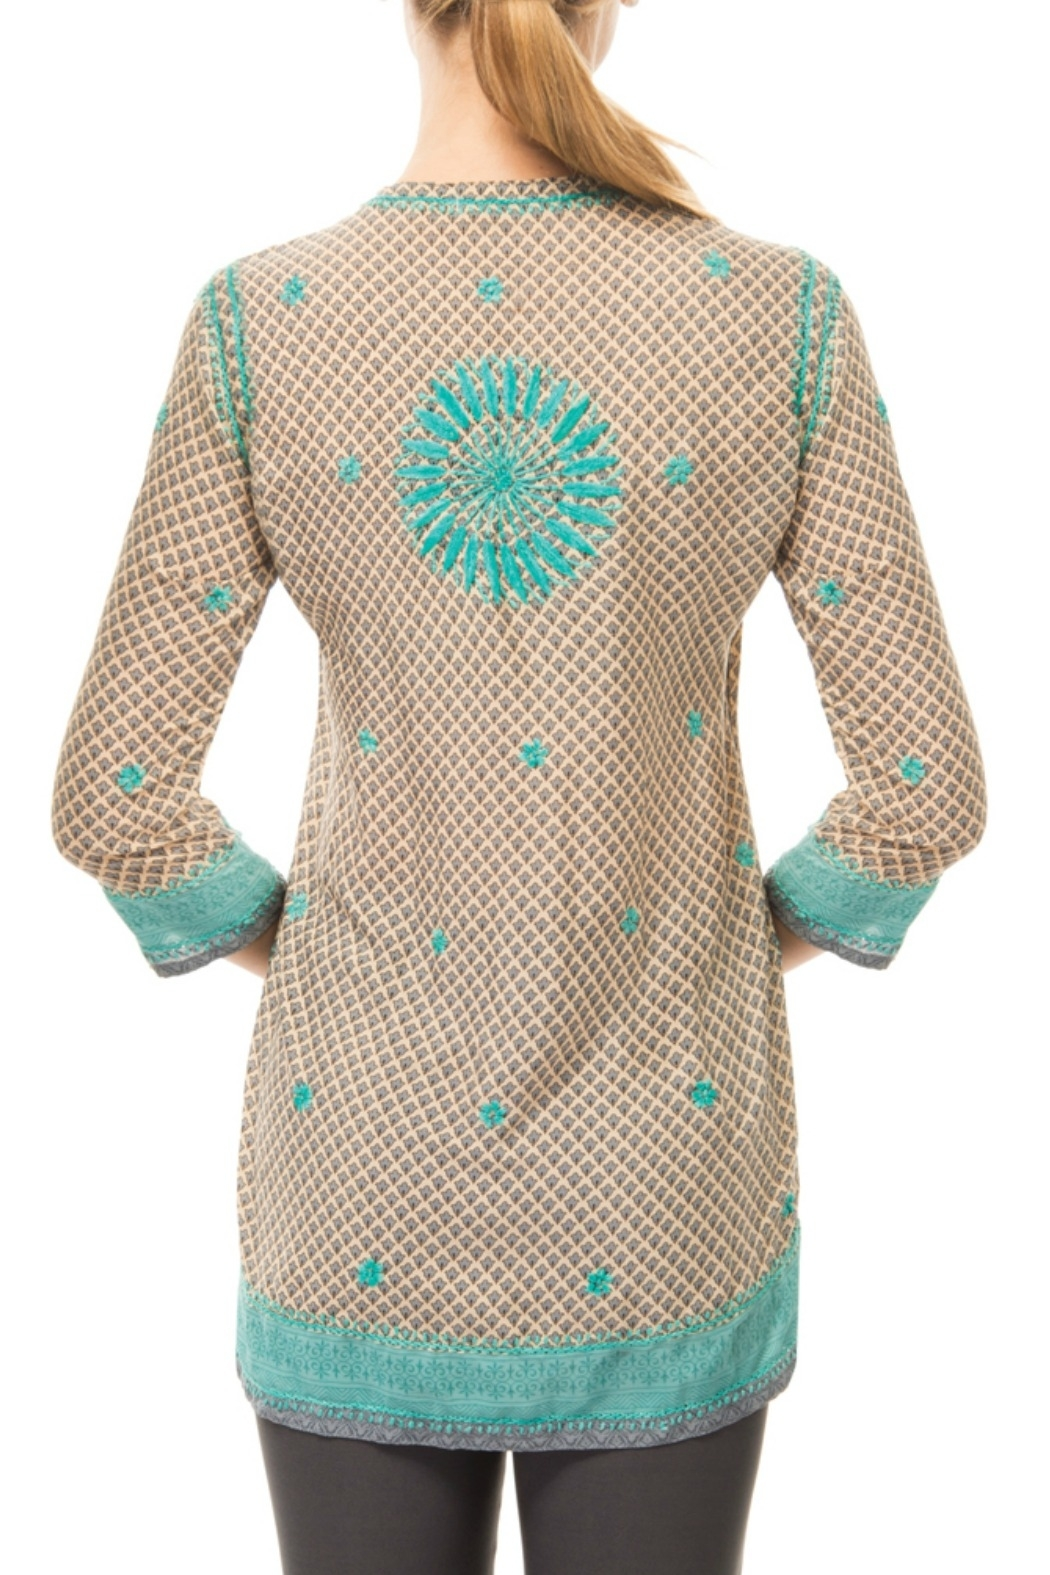 Gretchen Scott Silk Embroidered Tunic - Front Full Image